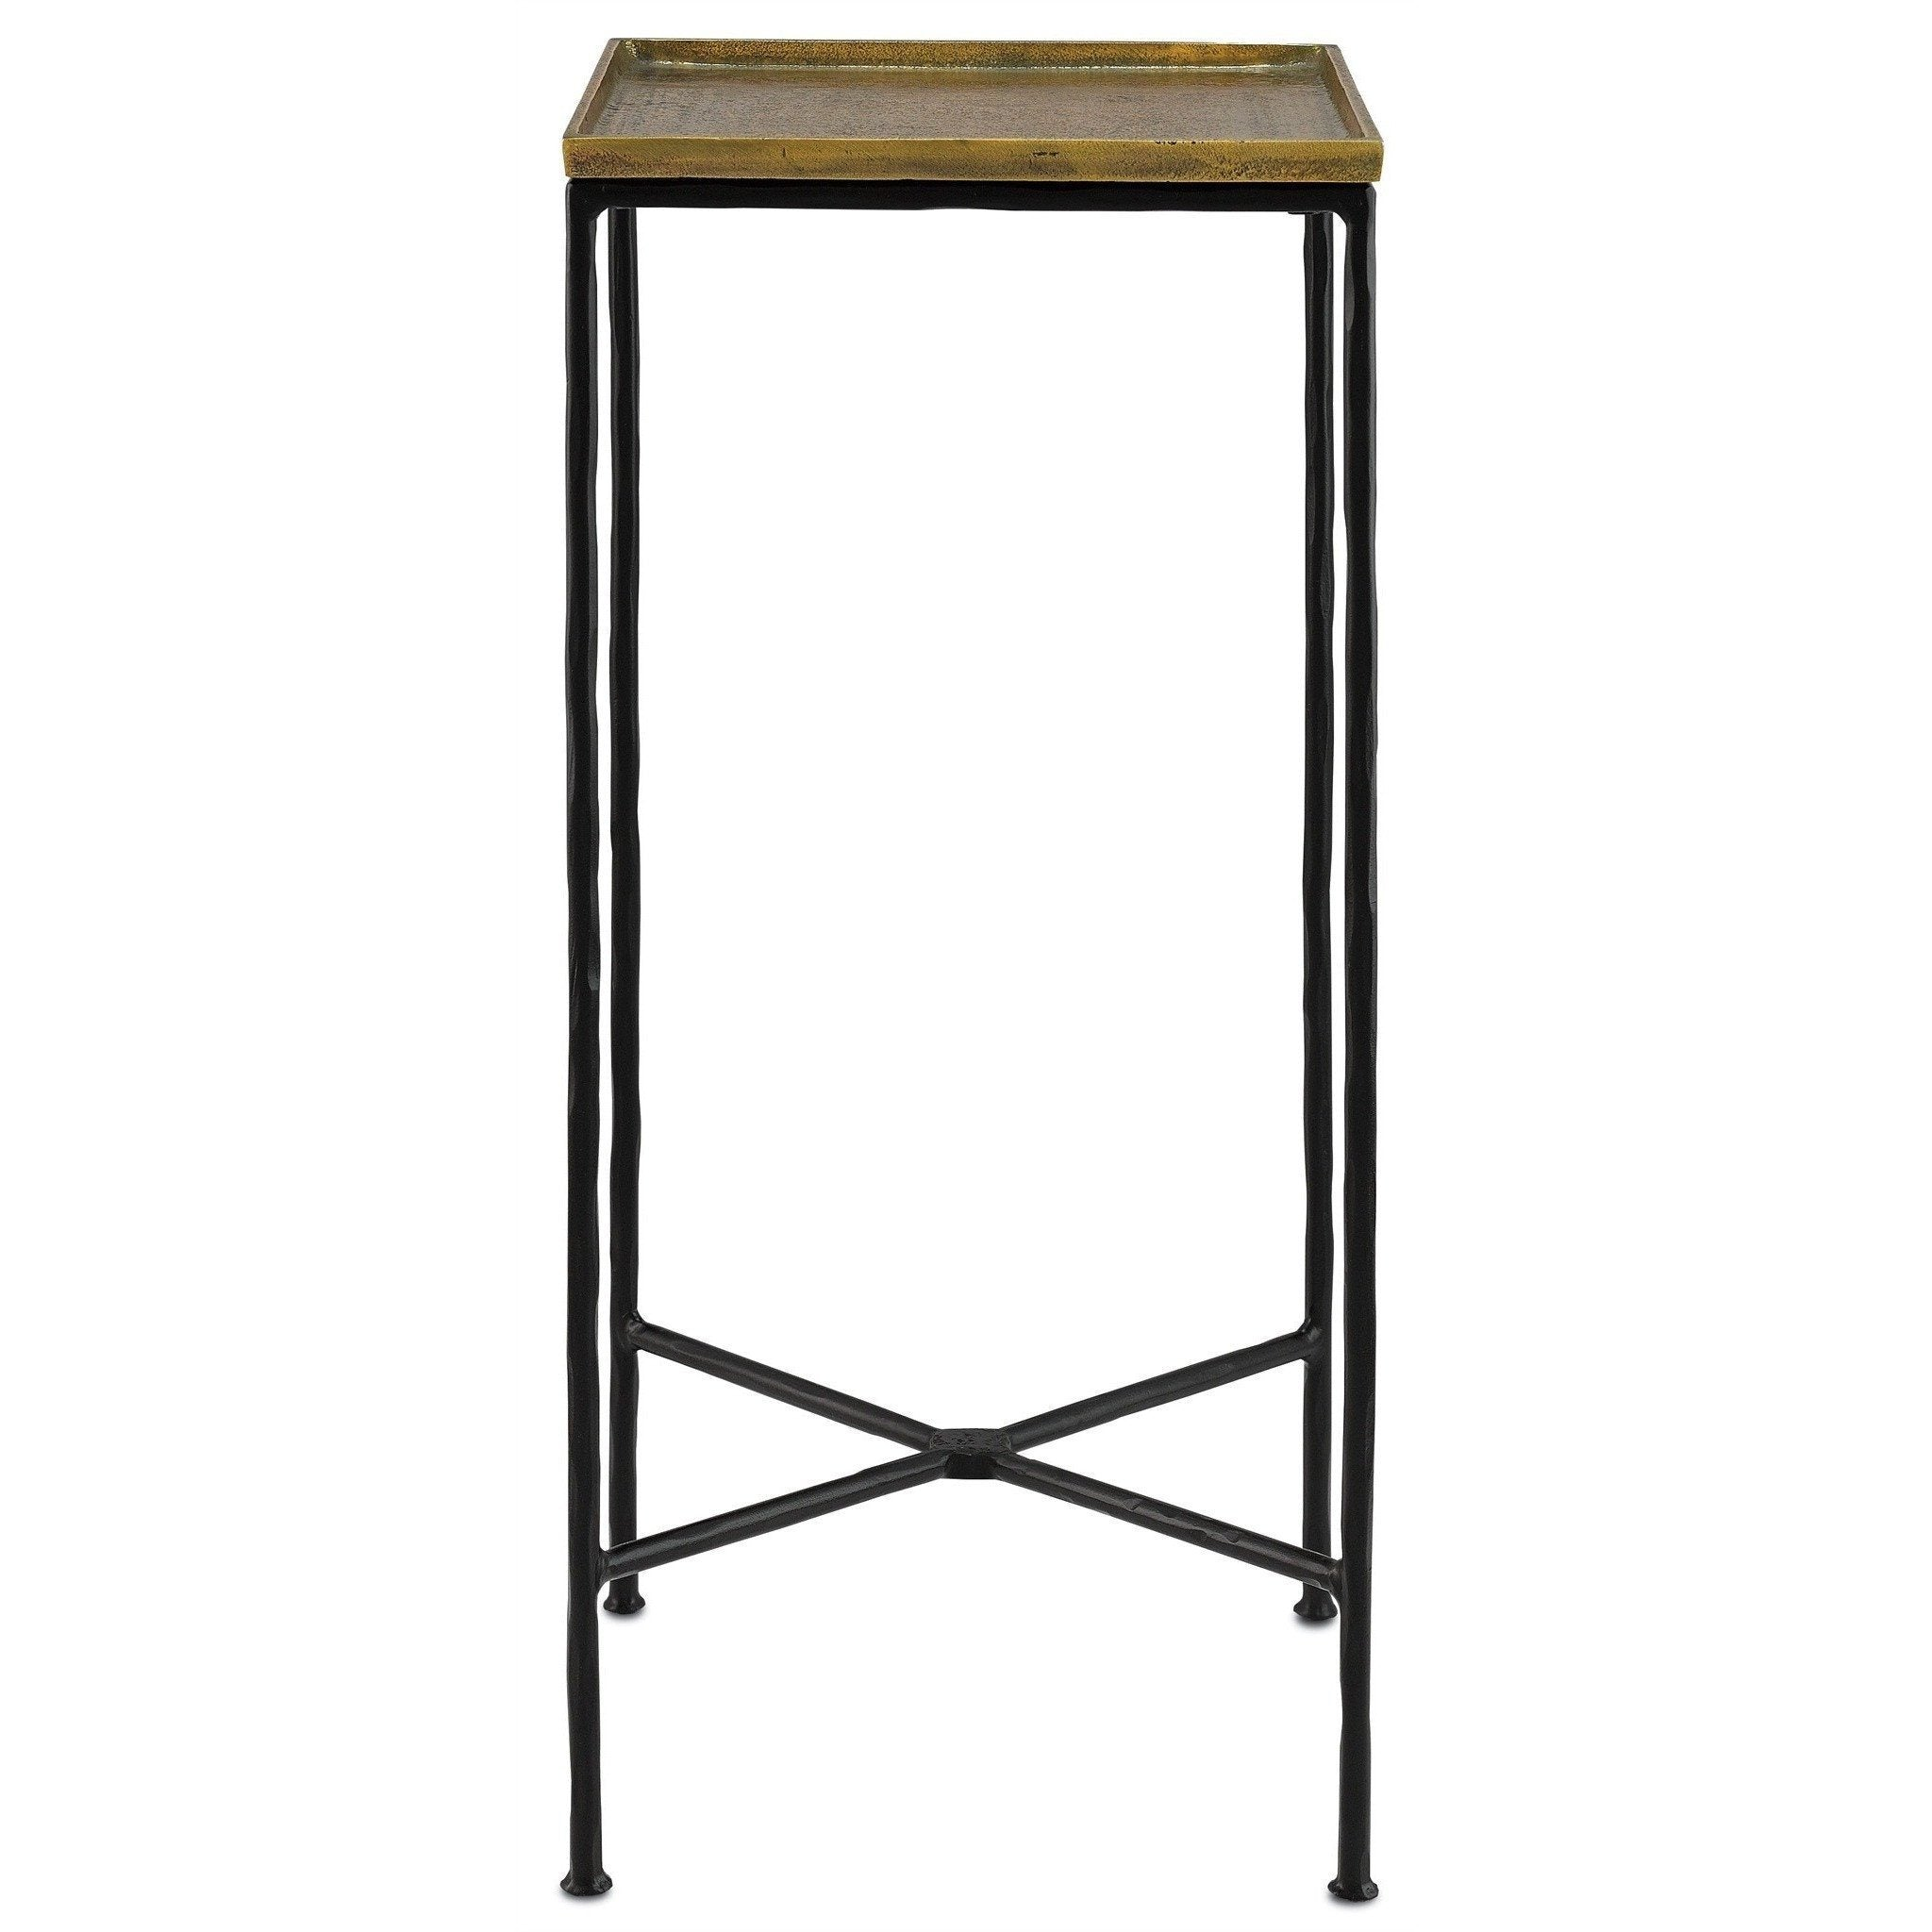 Currey and Company Boyles Drinks Table - LOVECUP